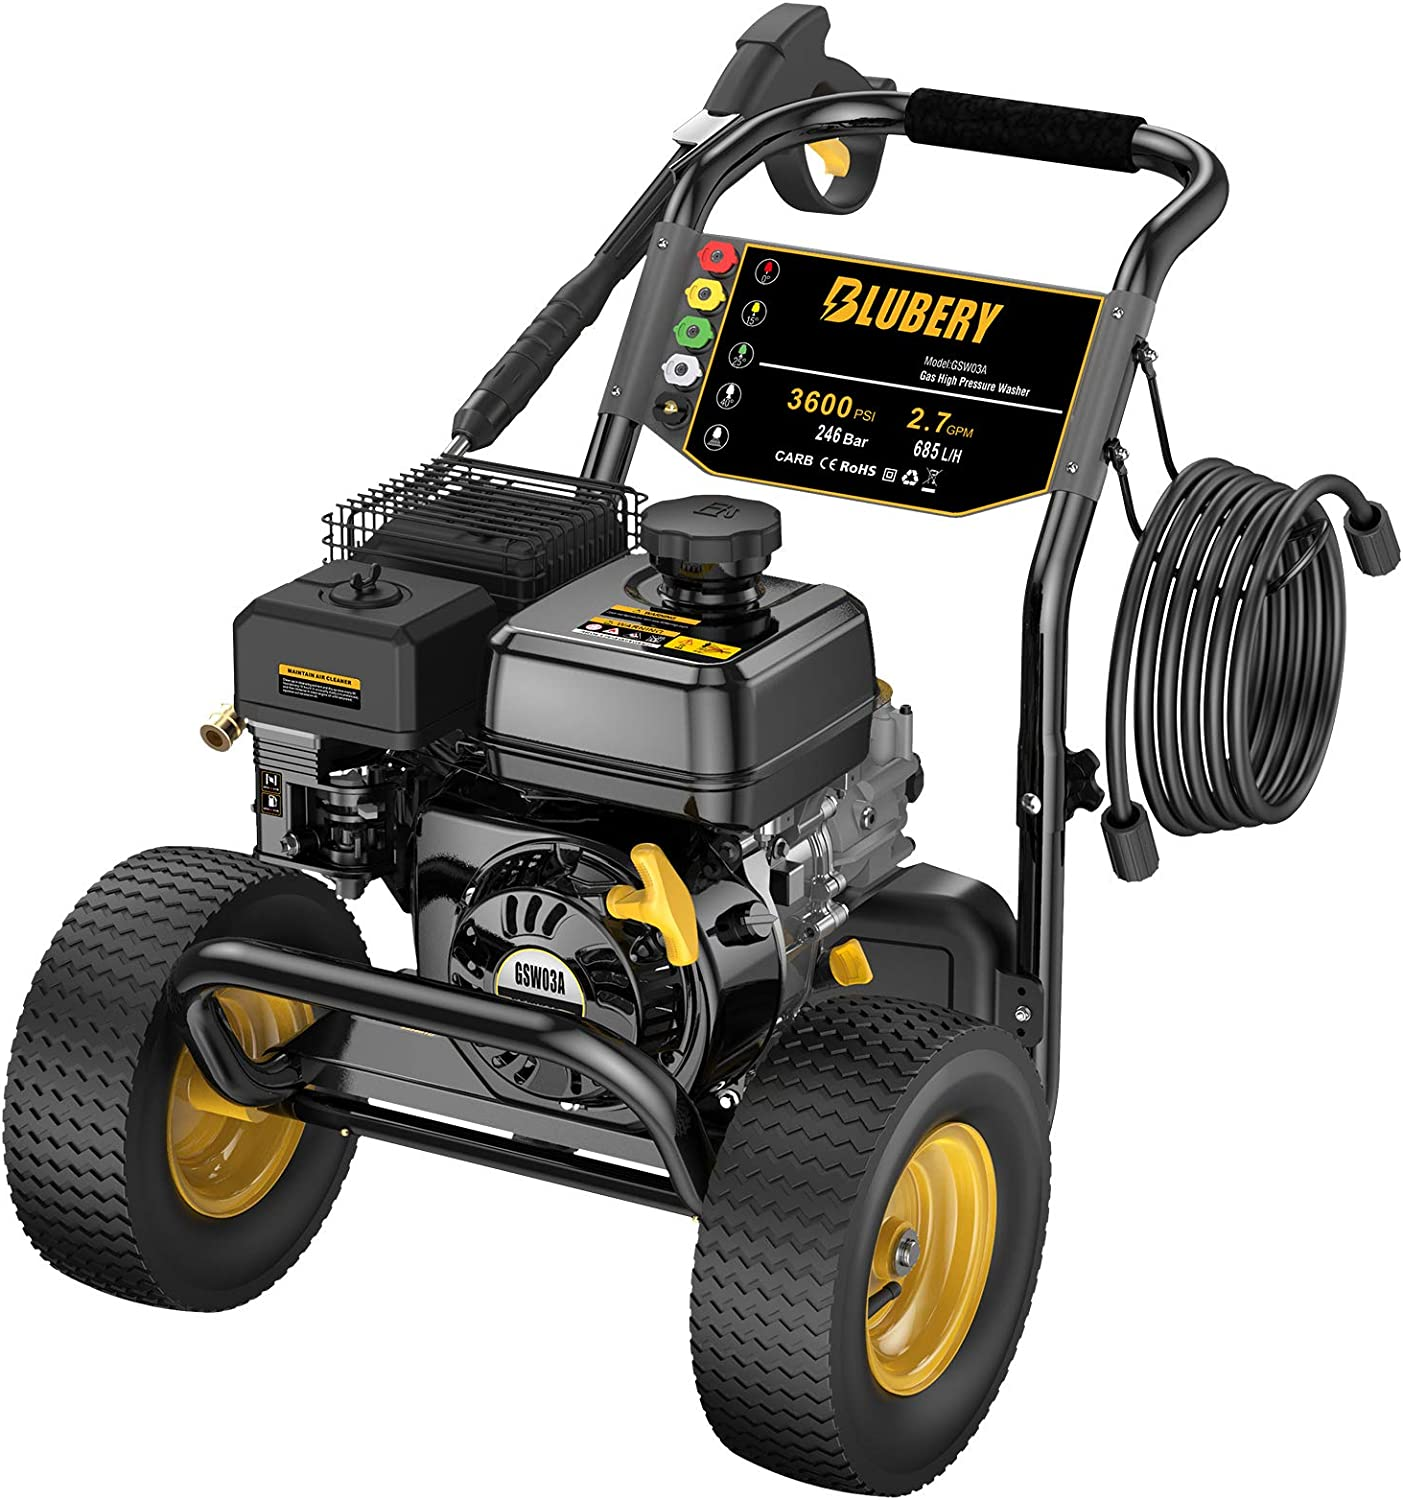 Blueberry 3600 PSI security 2.7 GPM Gas Pressure Adjustable Washer Max 41% OFF 5 No